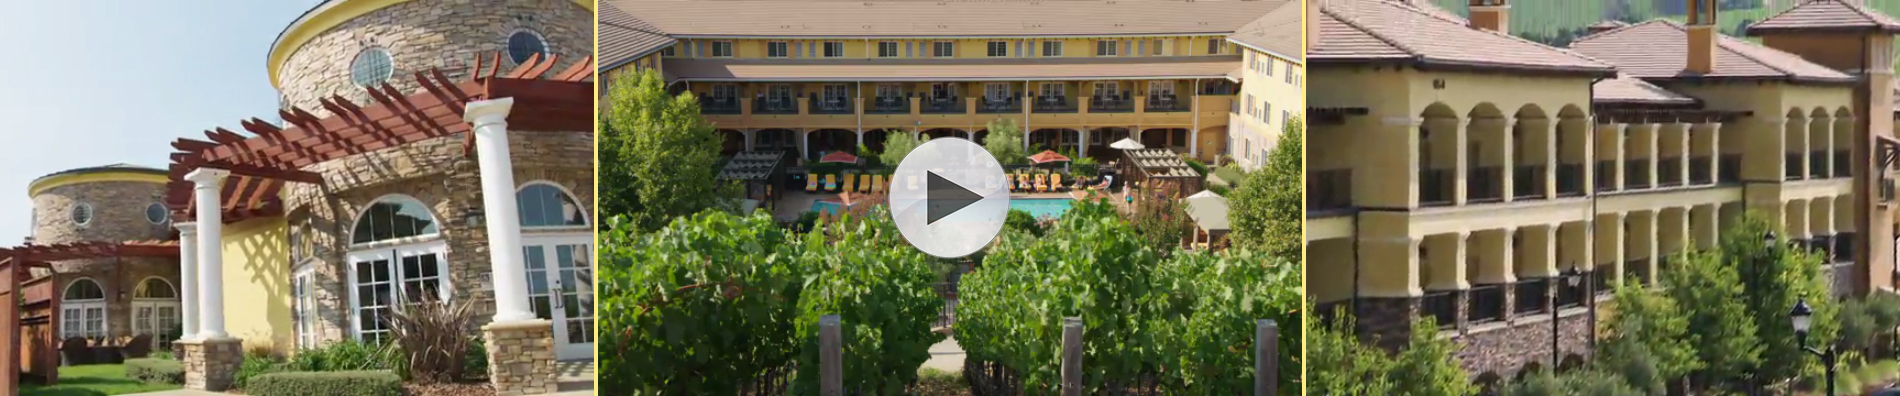 The Meritage Resort and Spa in Napa Valley is ready for its next guest